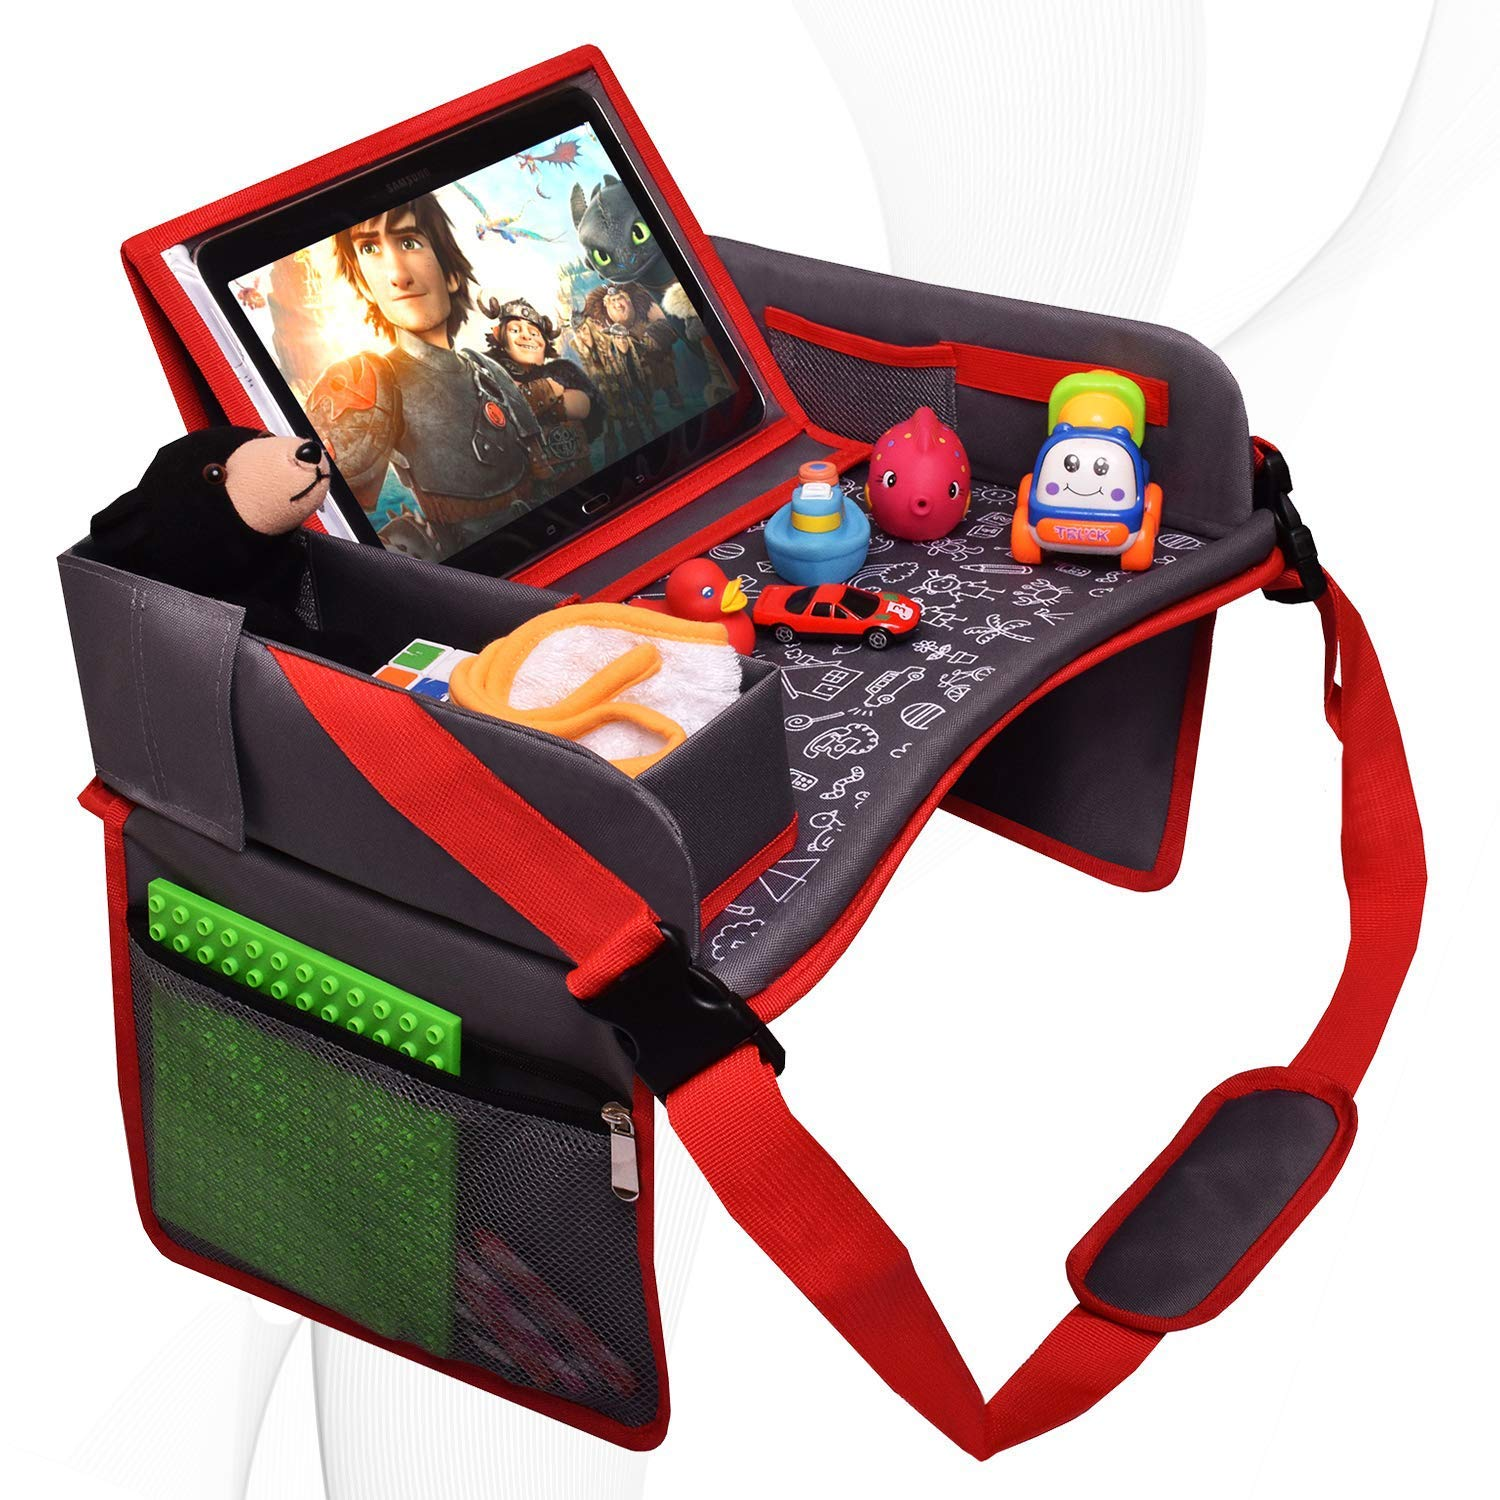 DMoose Kids Travel Tray, Toddler Car Seat Lap Activity Tray with Padded Comfort Base, Side Walls, Mesh Snack Pockets, Tablet Holder, Waterproof Car Seat, Stroller, Airplane Play and Learn Area (Grey)